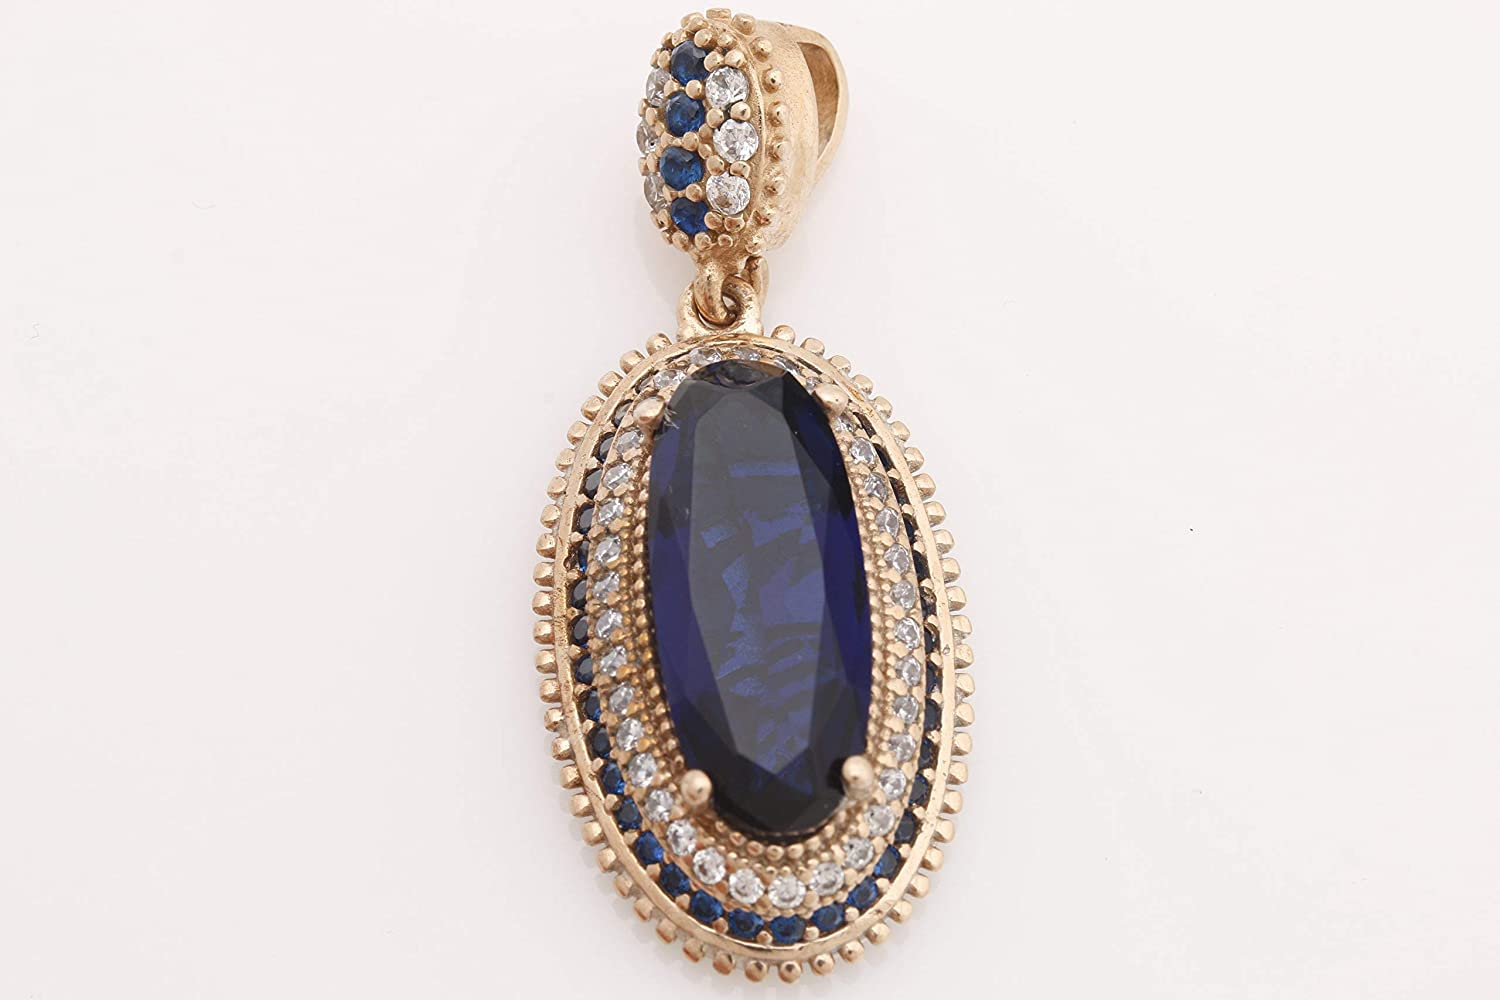 Turkish Handmade Jewelry Long Oval Shape Sapphire and Round Cut Topaz 925 Sterling Silver Pendant